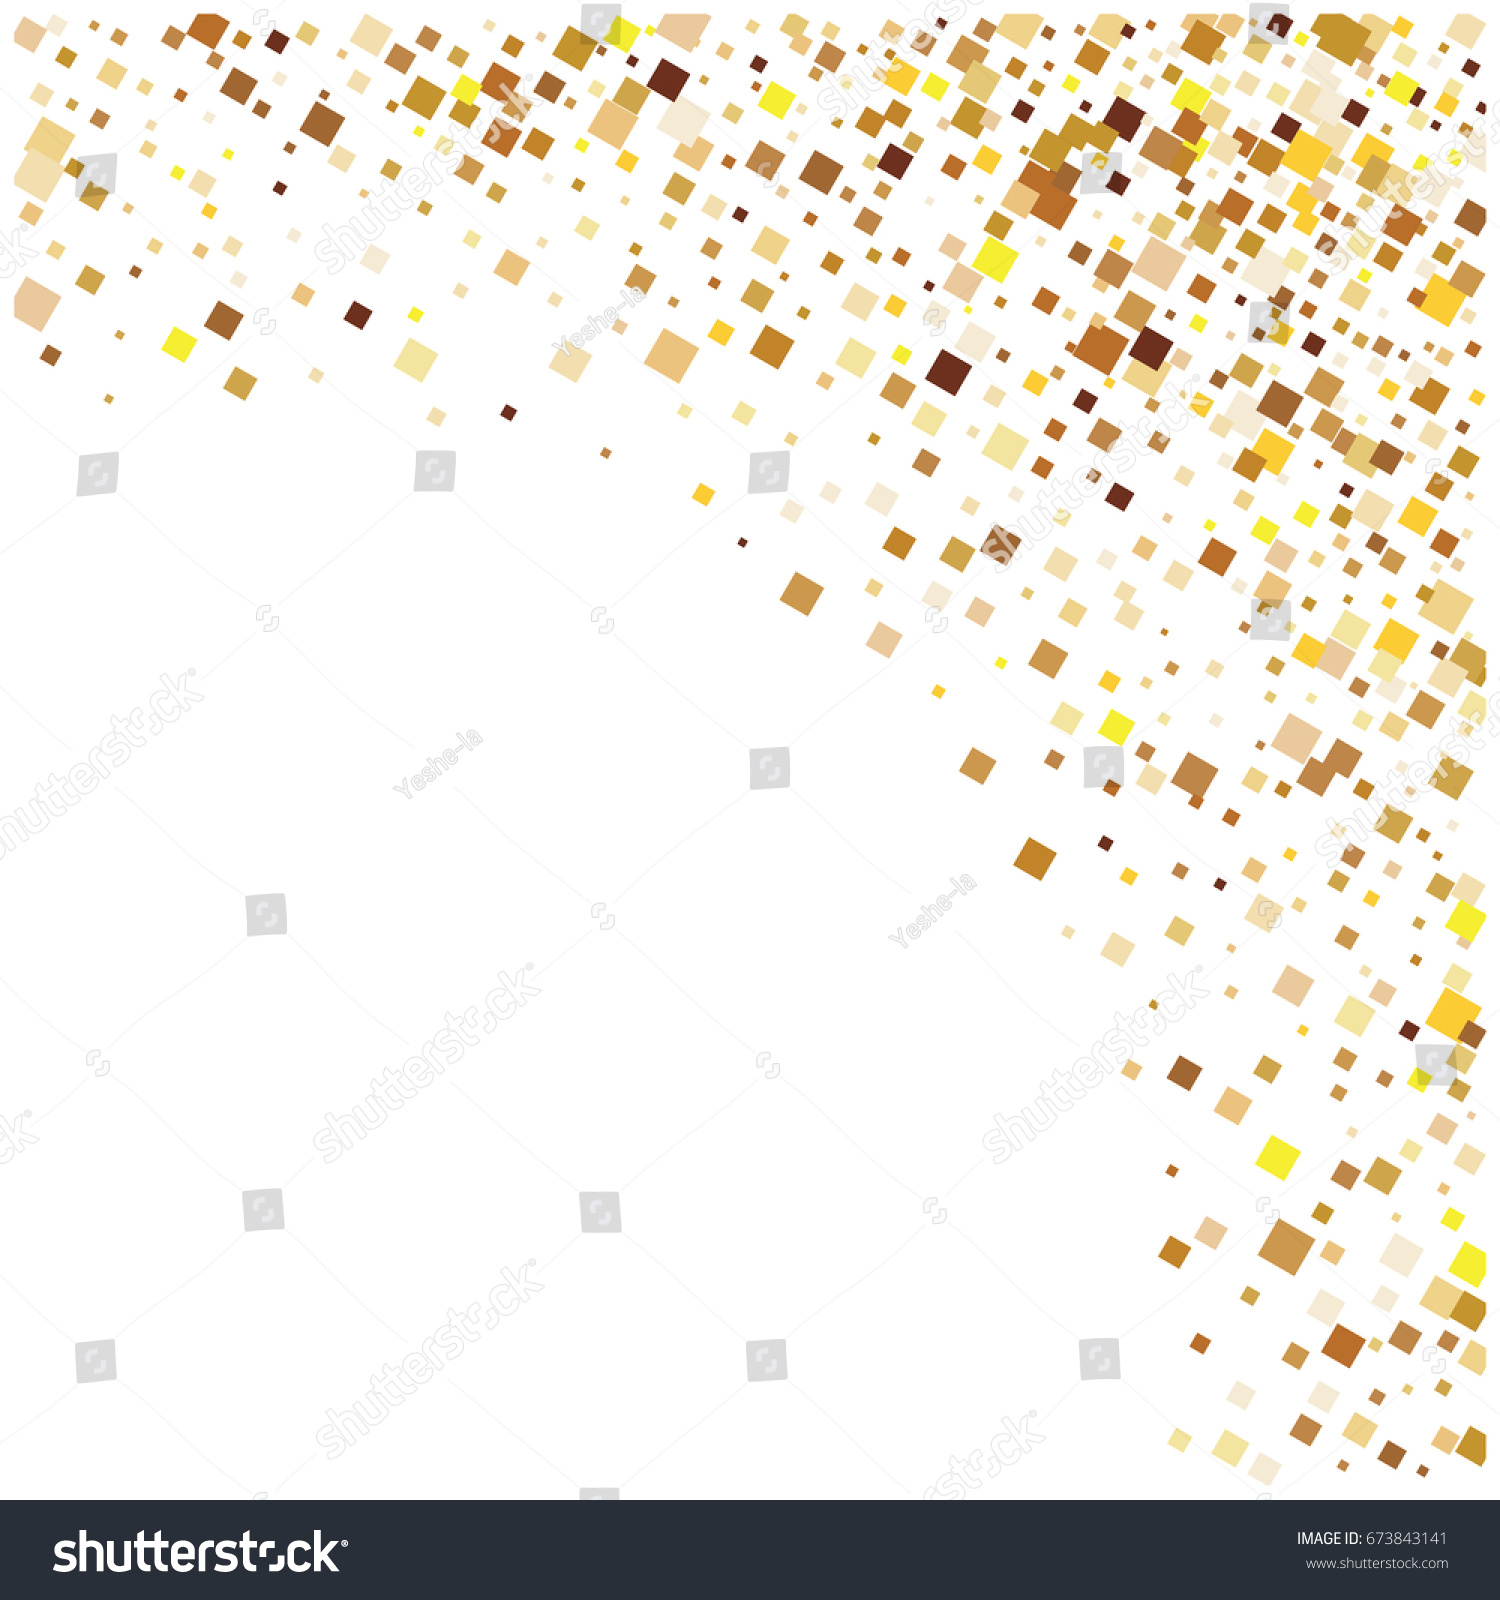 rich golden vector sparkling confetti squares falling down vip premium design christmas new